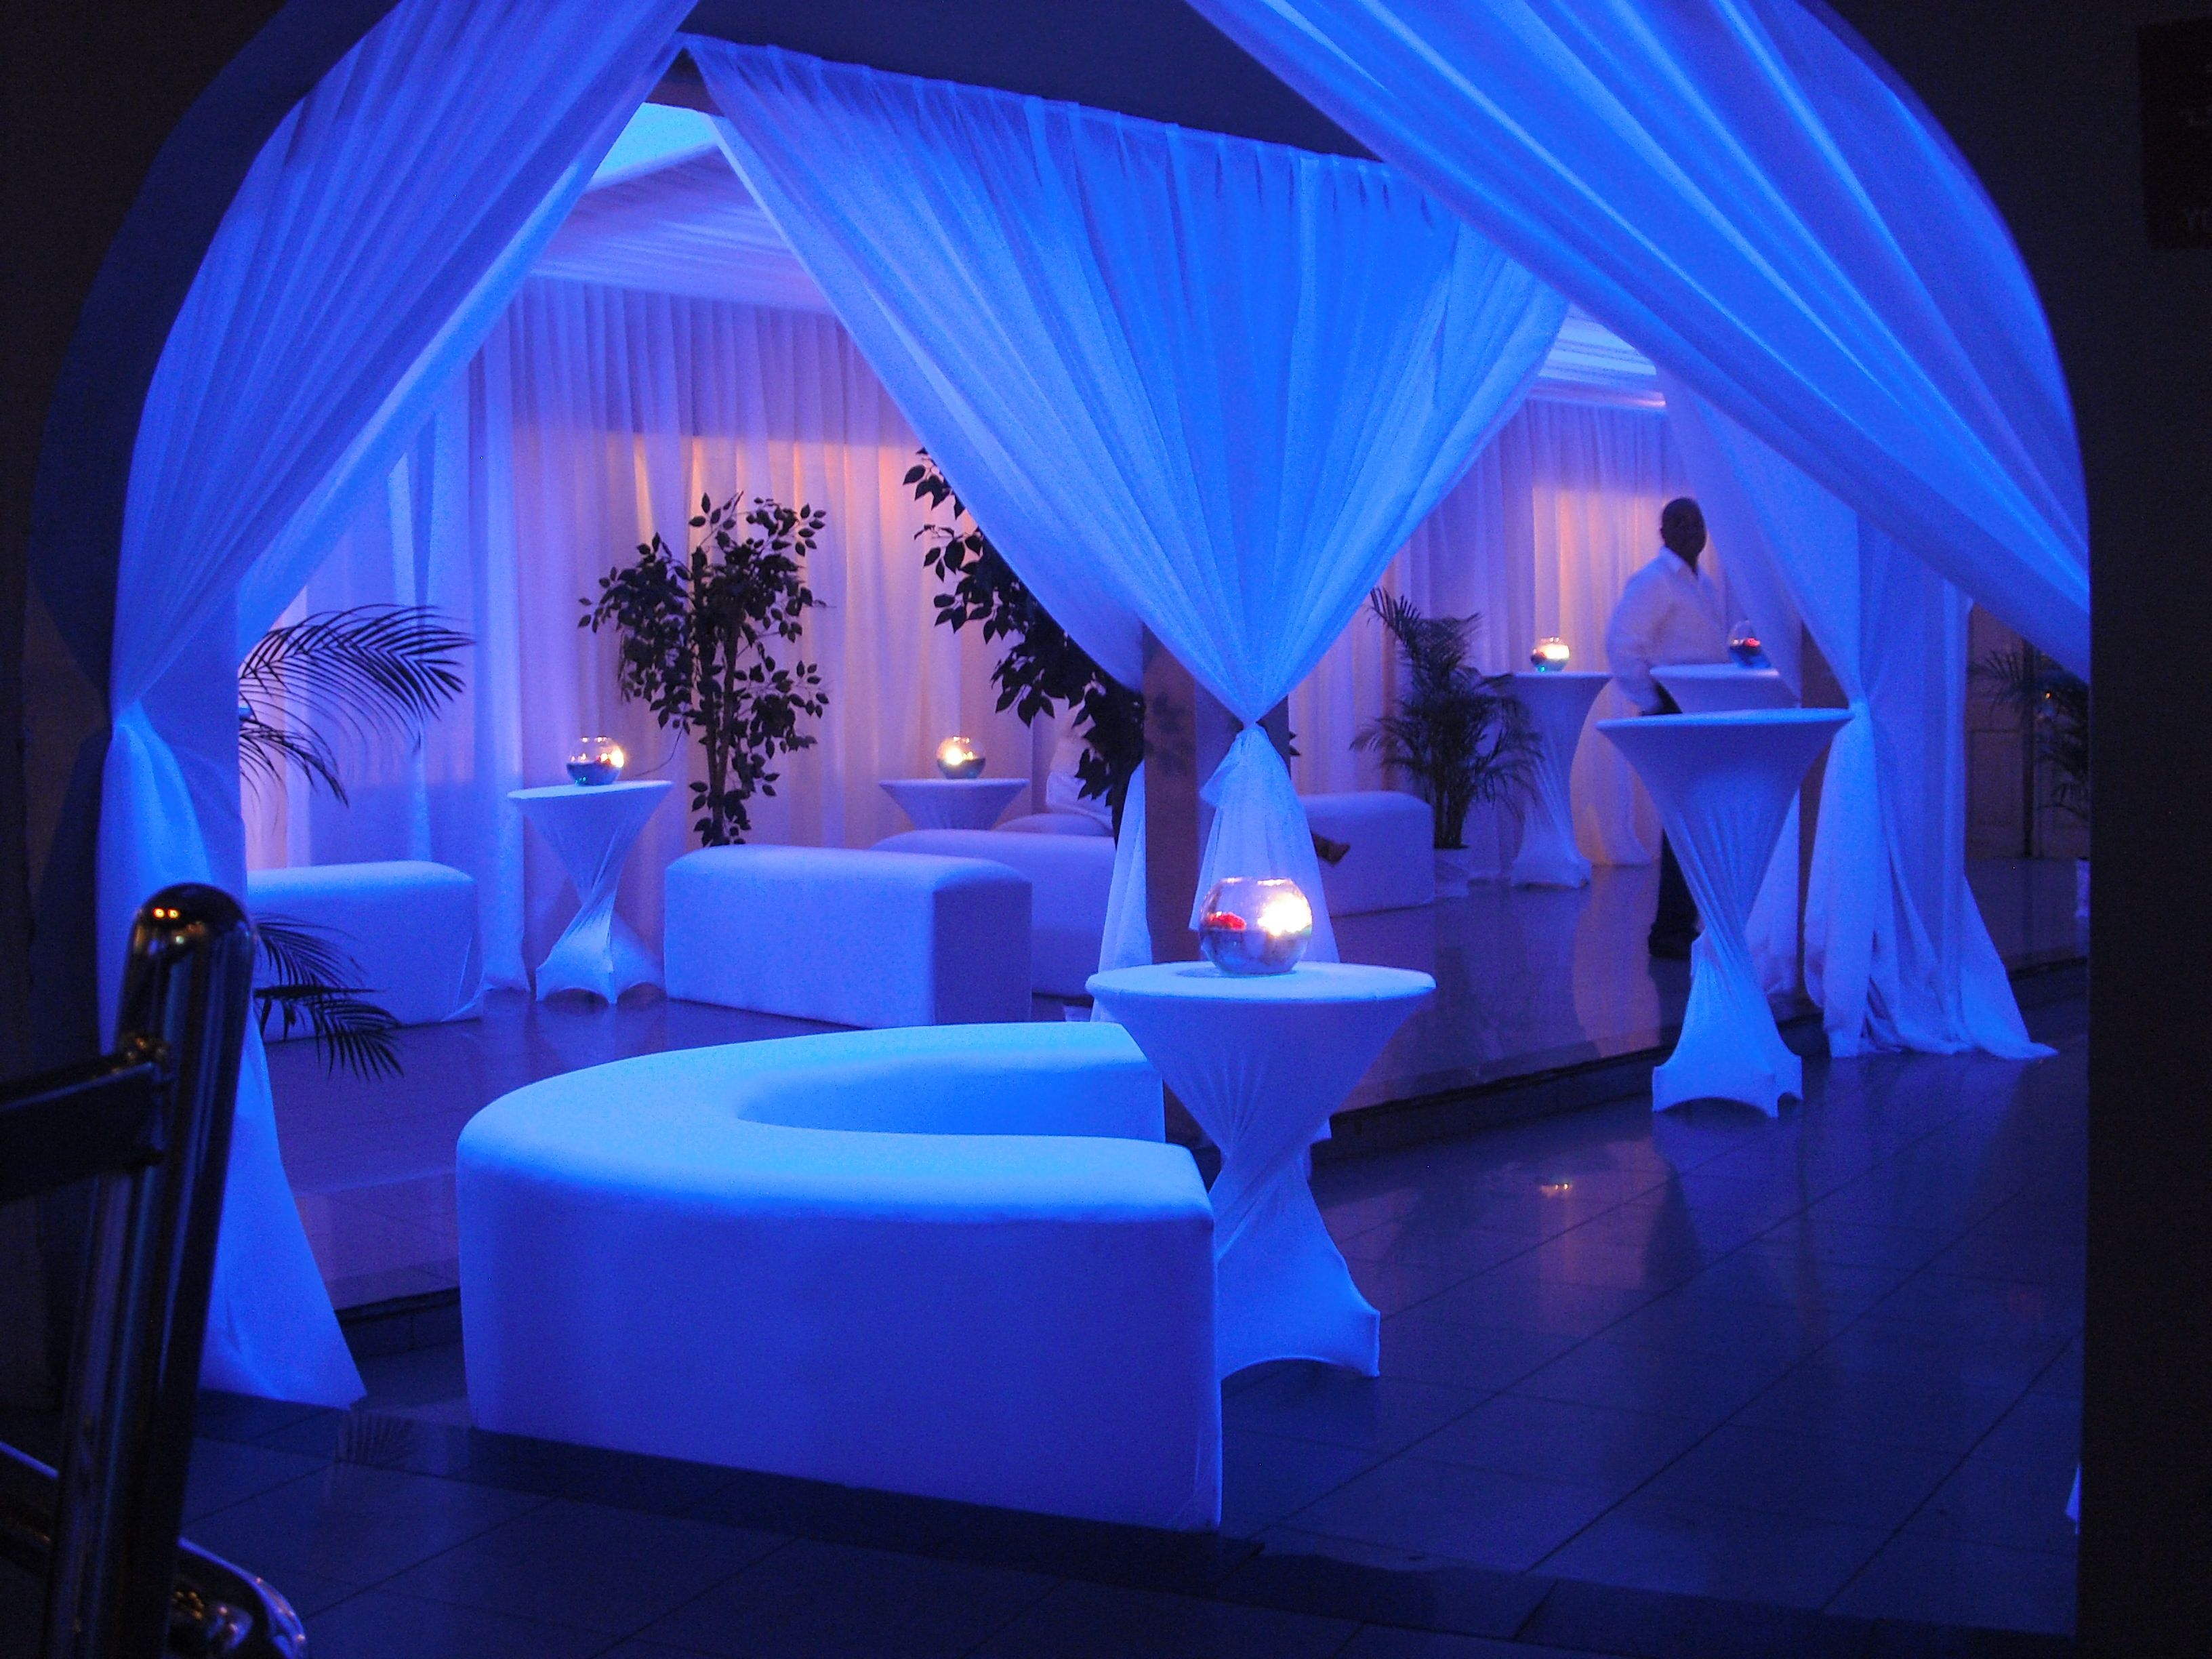 Waterfalls Limited. Exquisite decor complemented by some of the most delectable dishes.